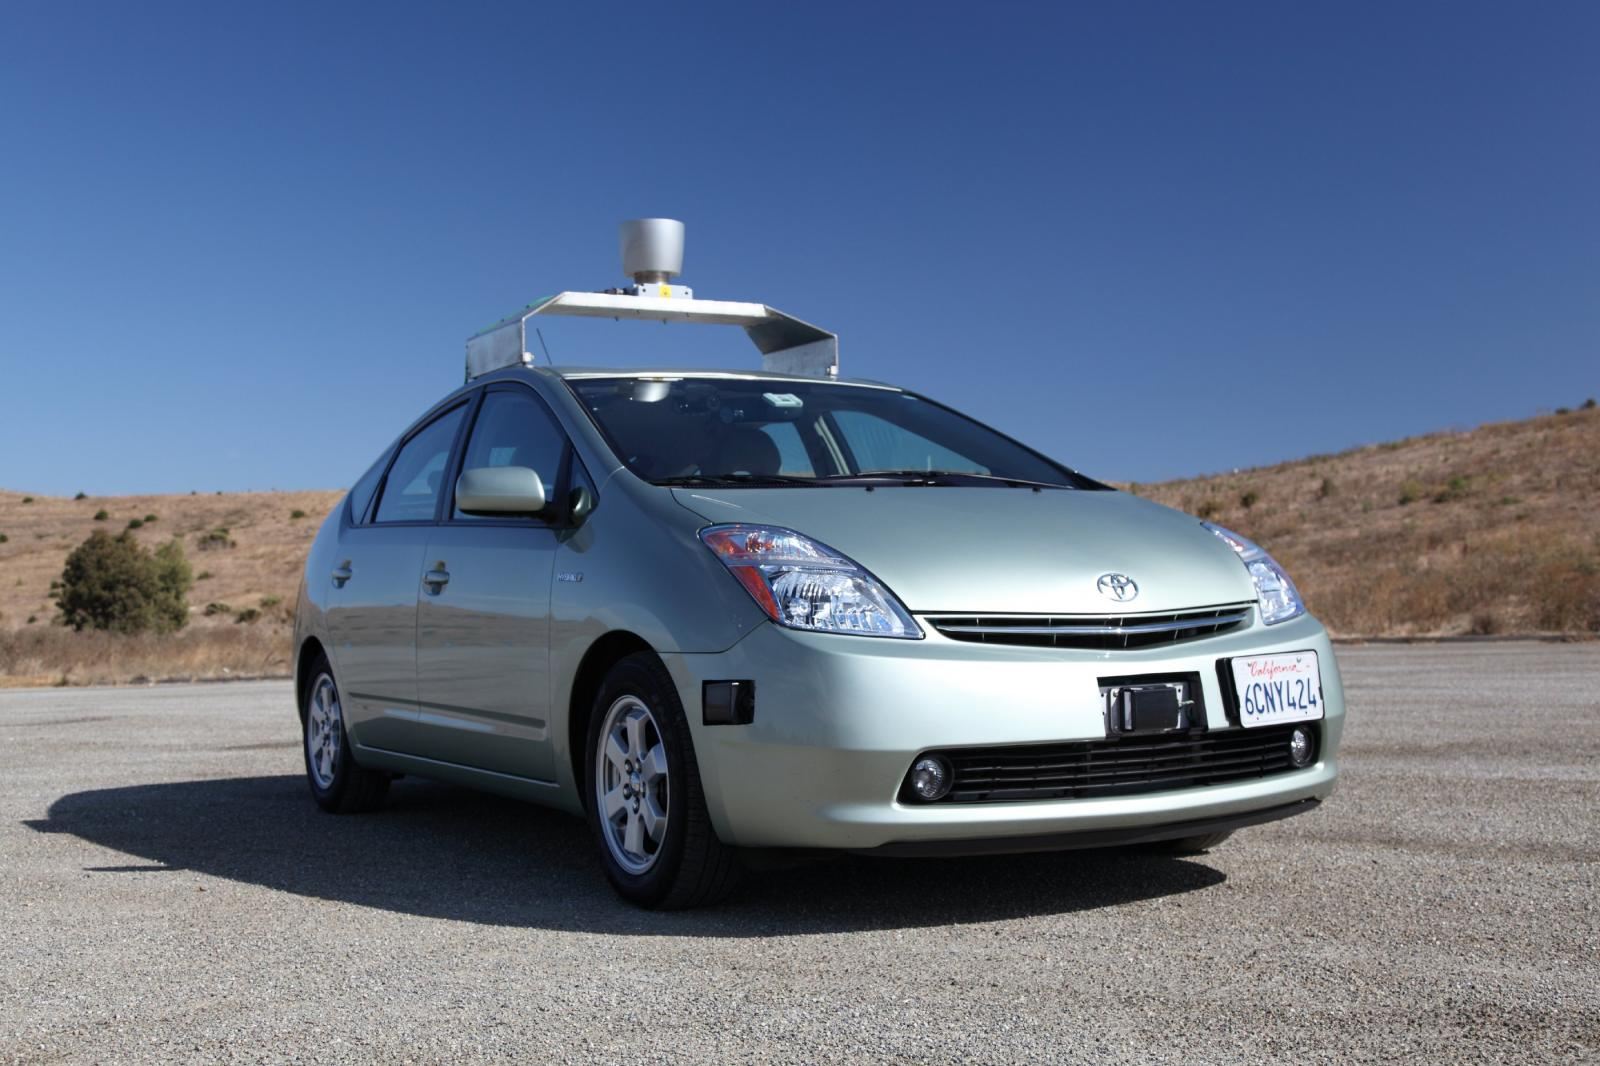 Google's autonomous vehicle got its driving license